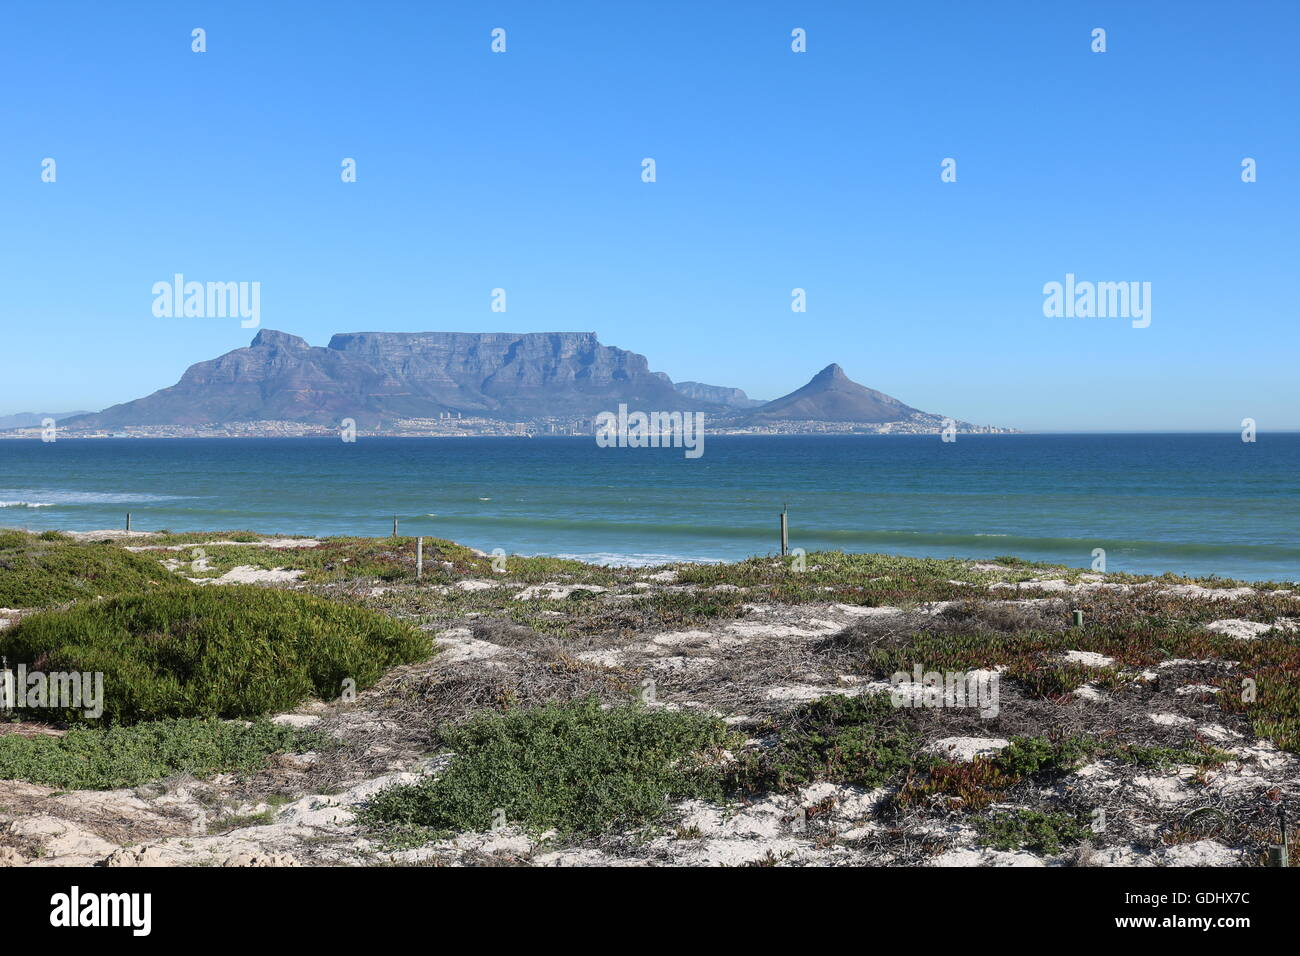 Table Mountain, Cape town afrique du sud Photo Stock